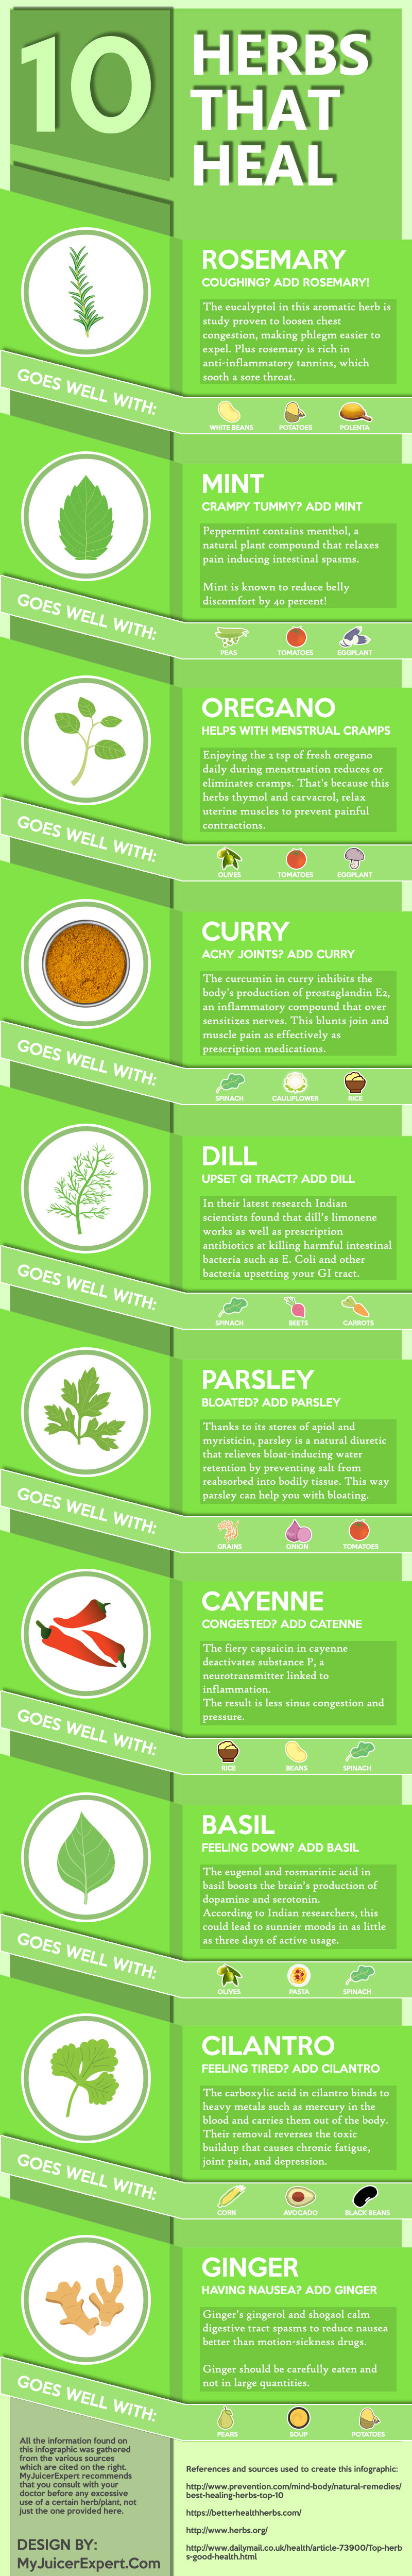 Top 10 Herbs That Heal